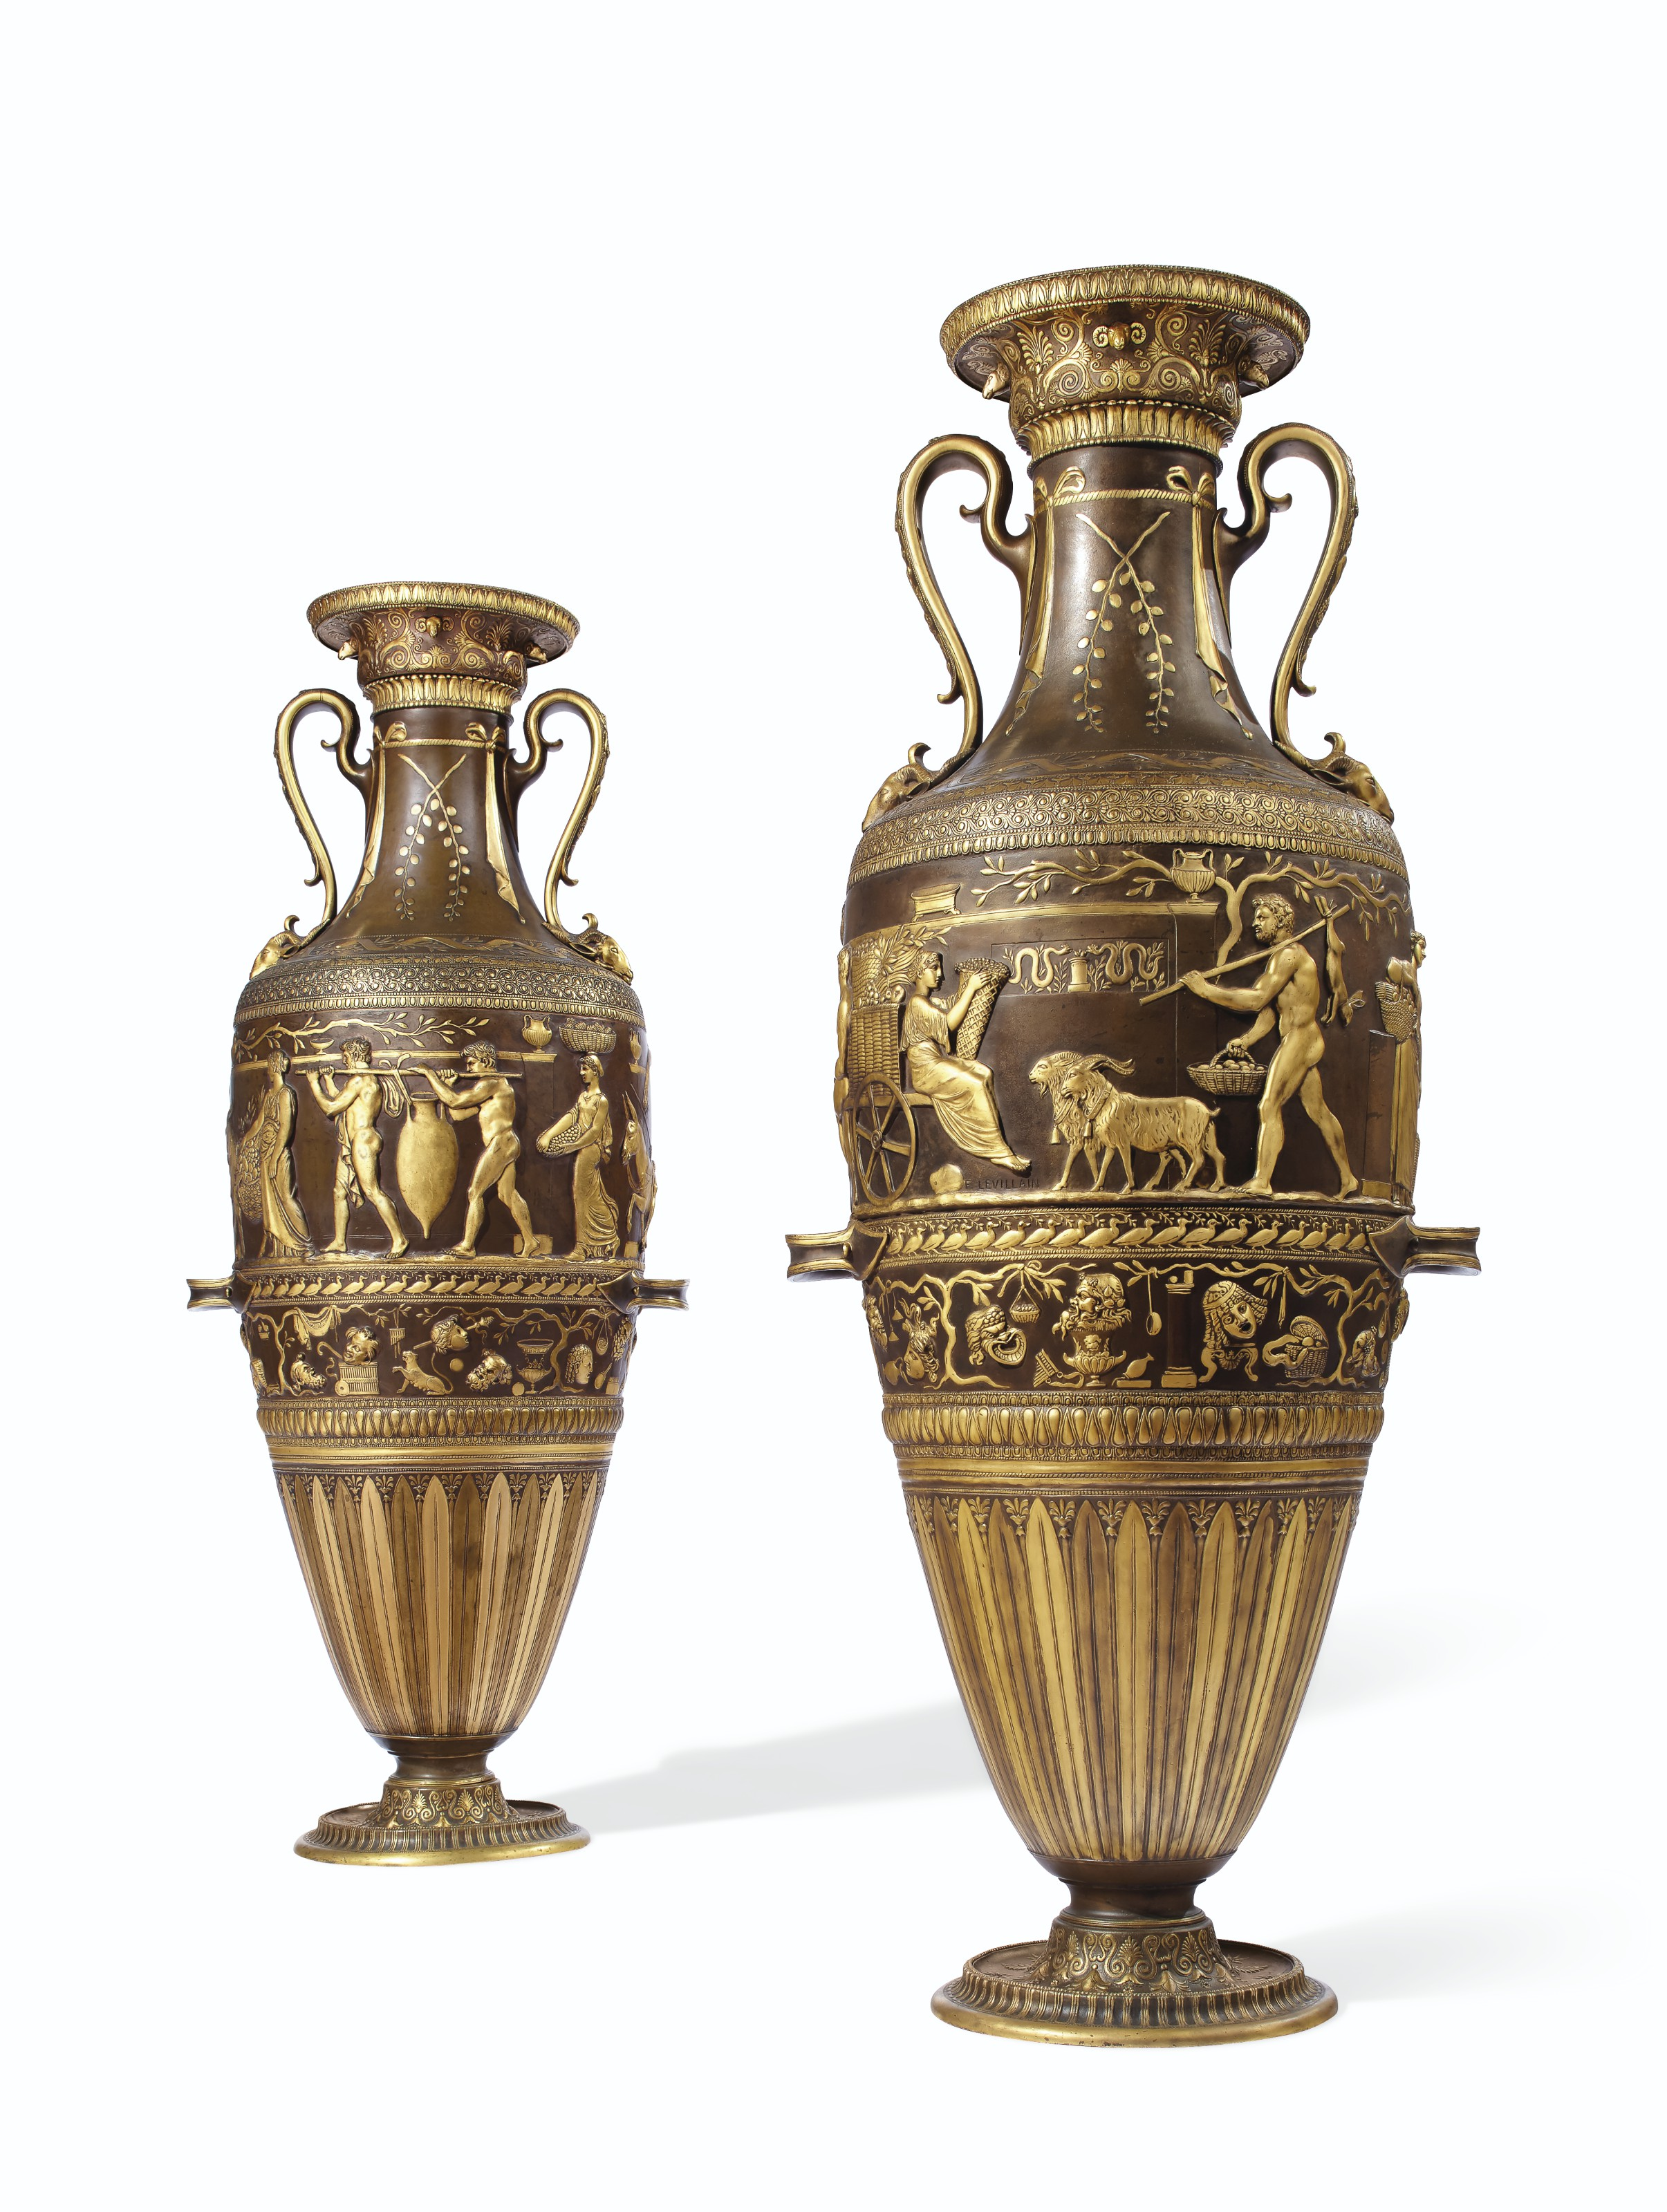 A PAIR OF FRENCH 'NEO-GREC' GILT AND PATINATED-BRONZE VASES